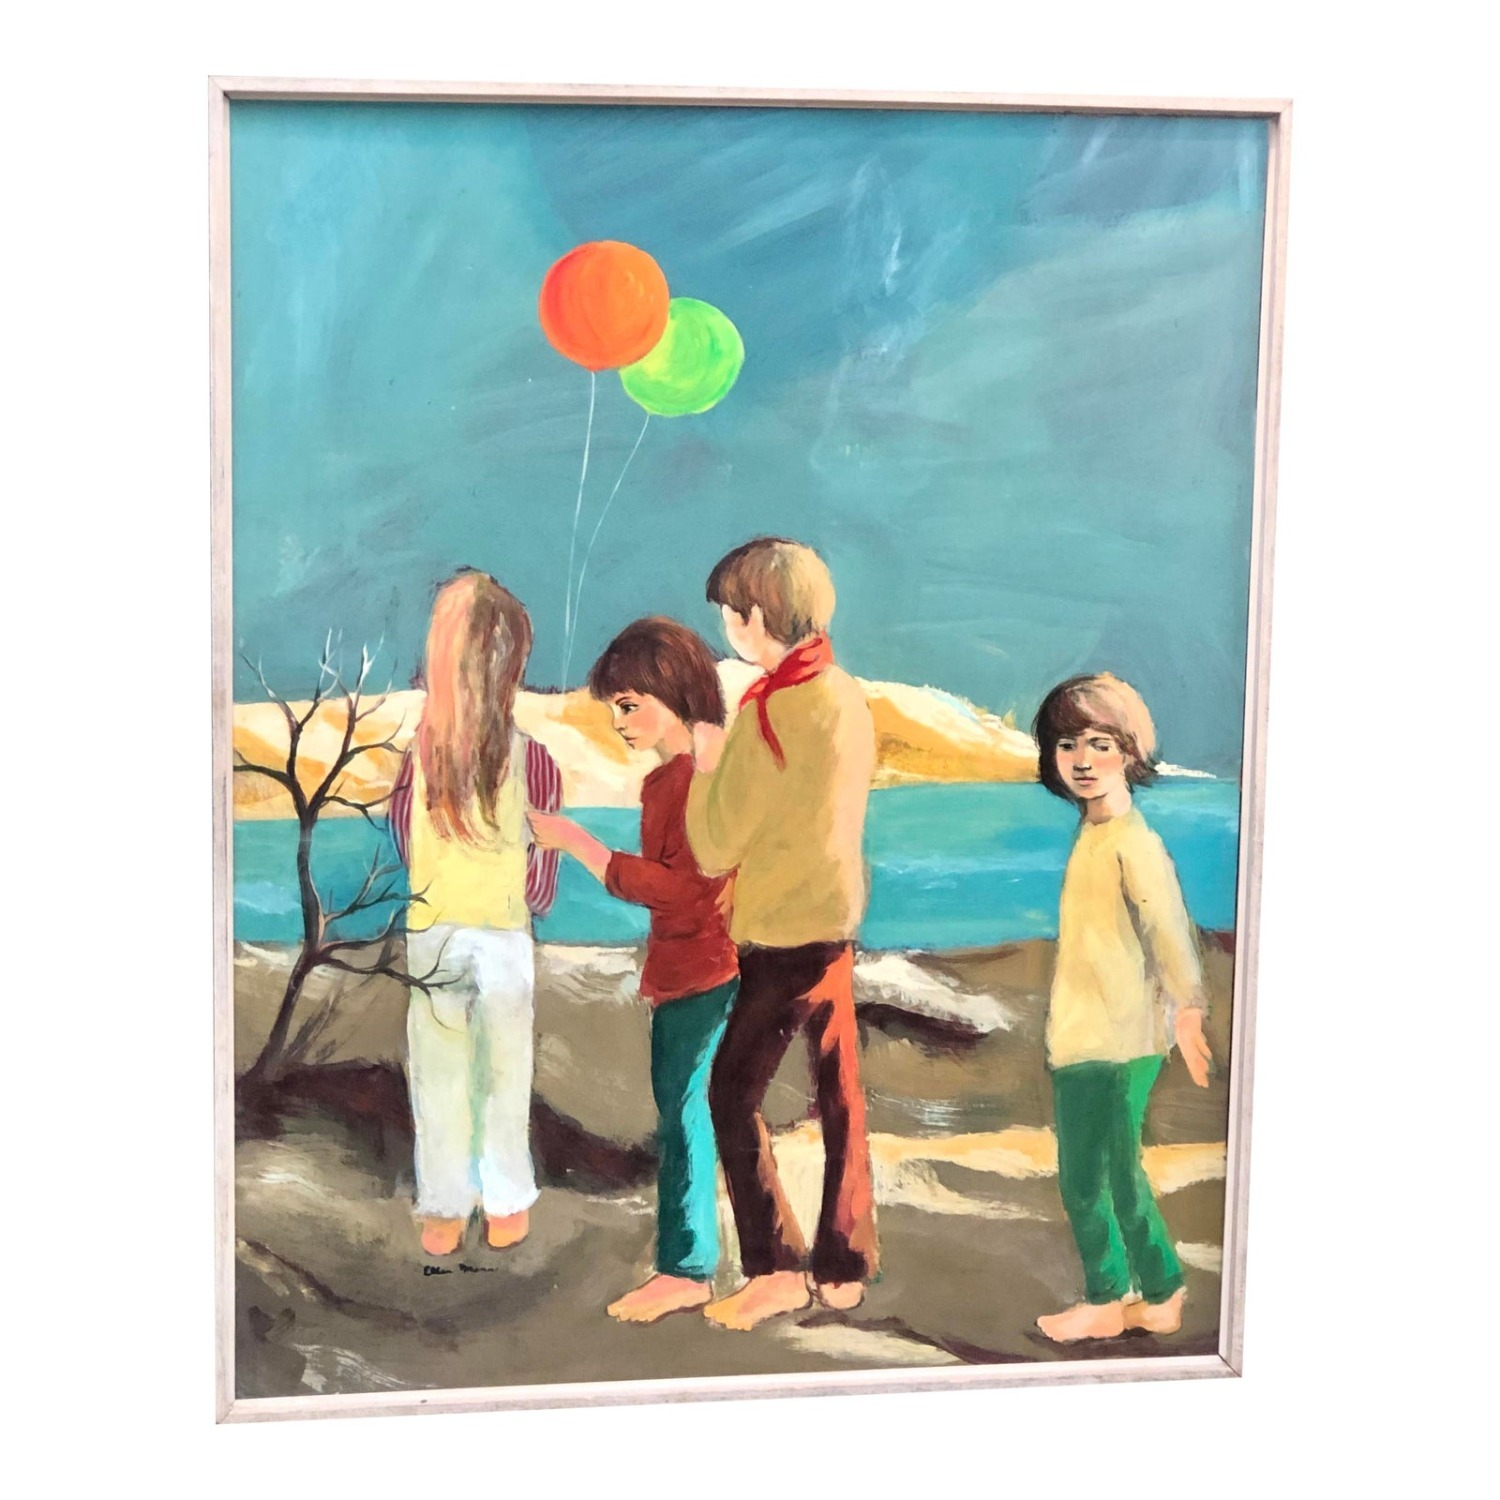 Cape Cod Children Vintage 1970s Painting - image-3